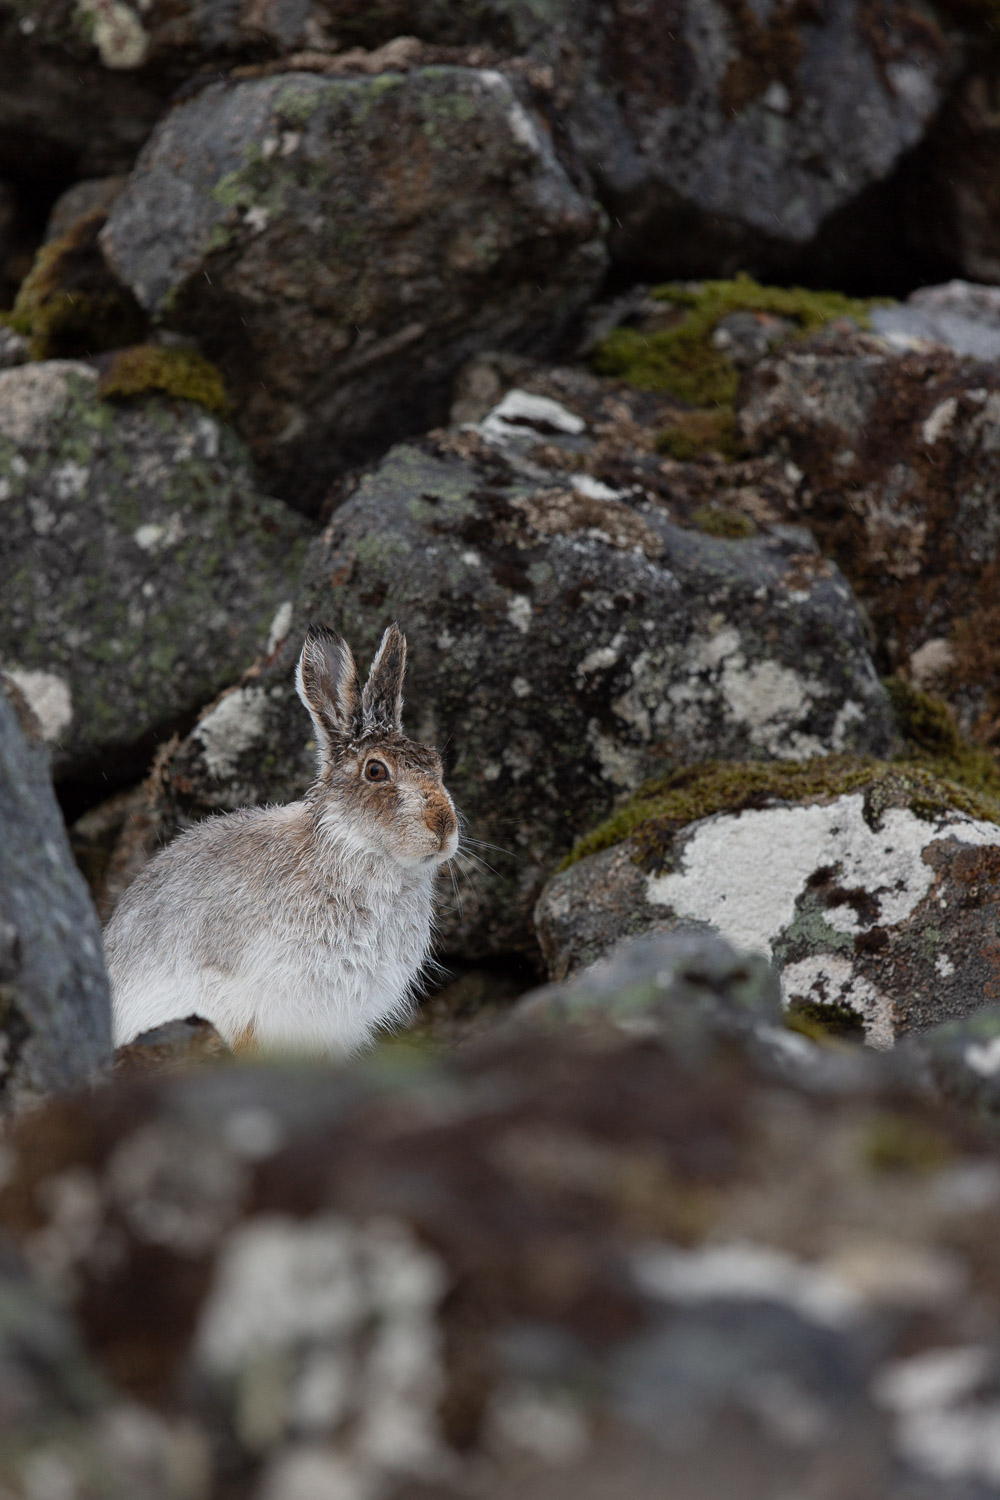 Mountain hare behind rocks